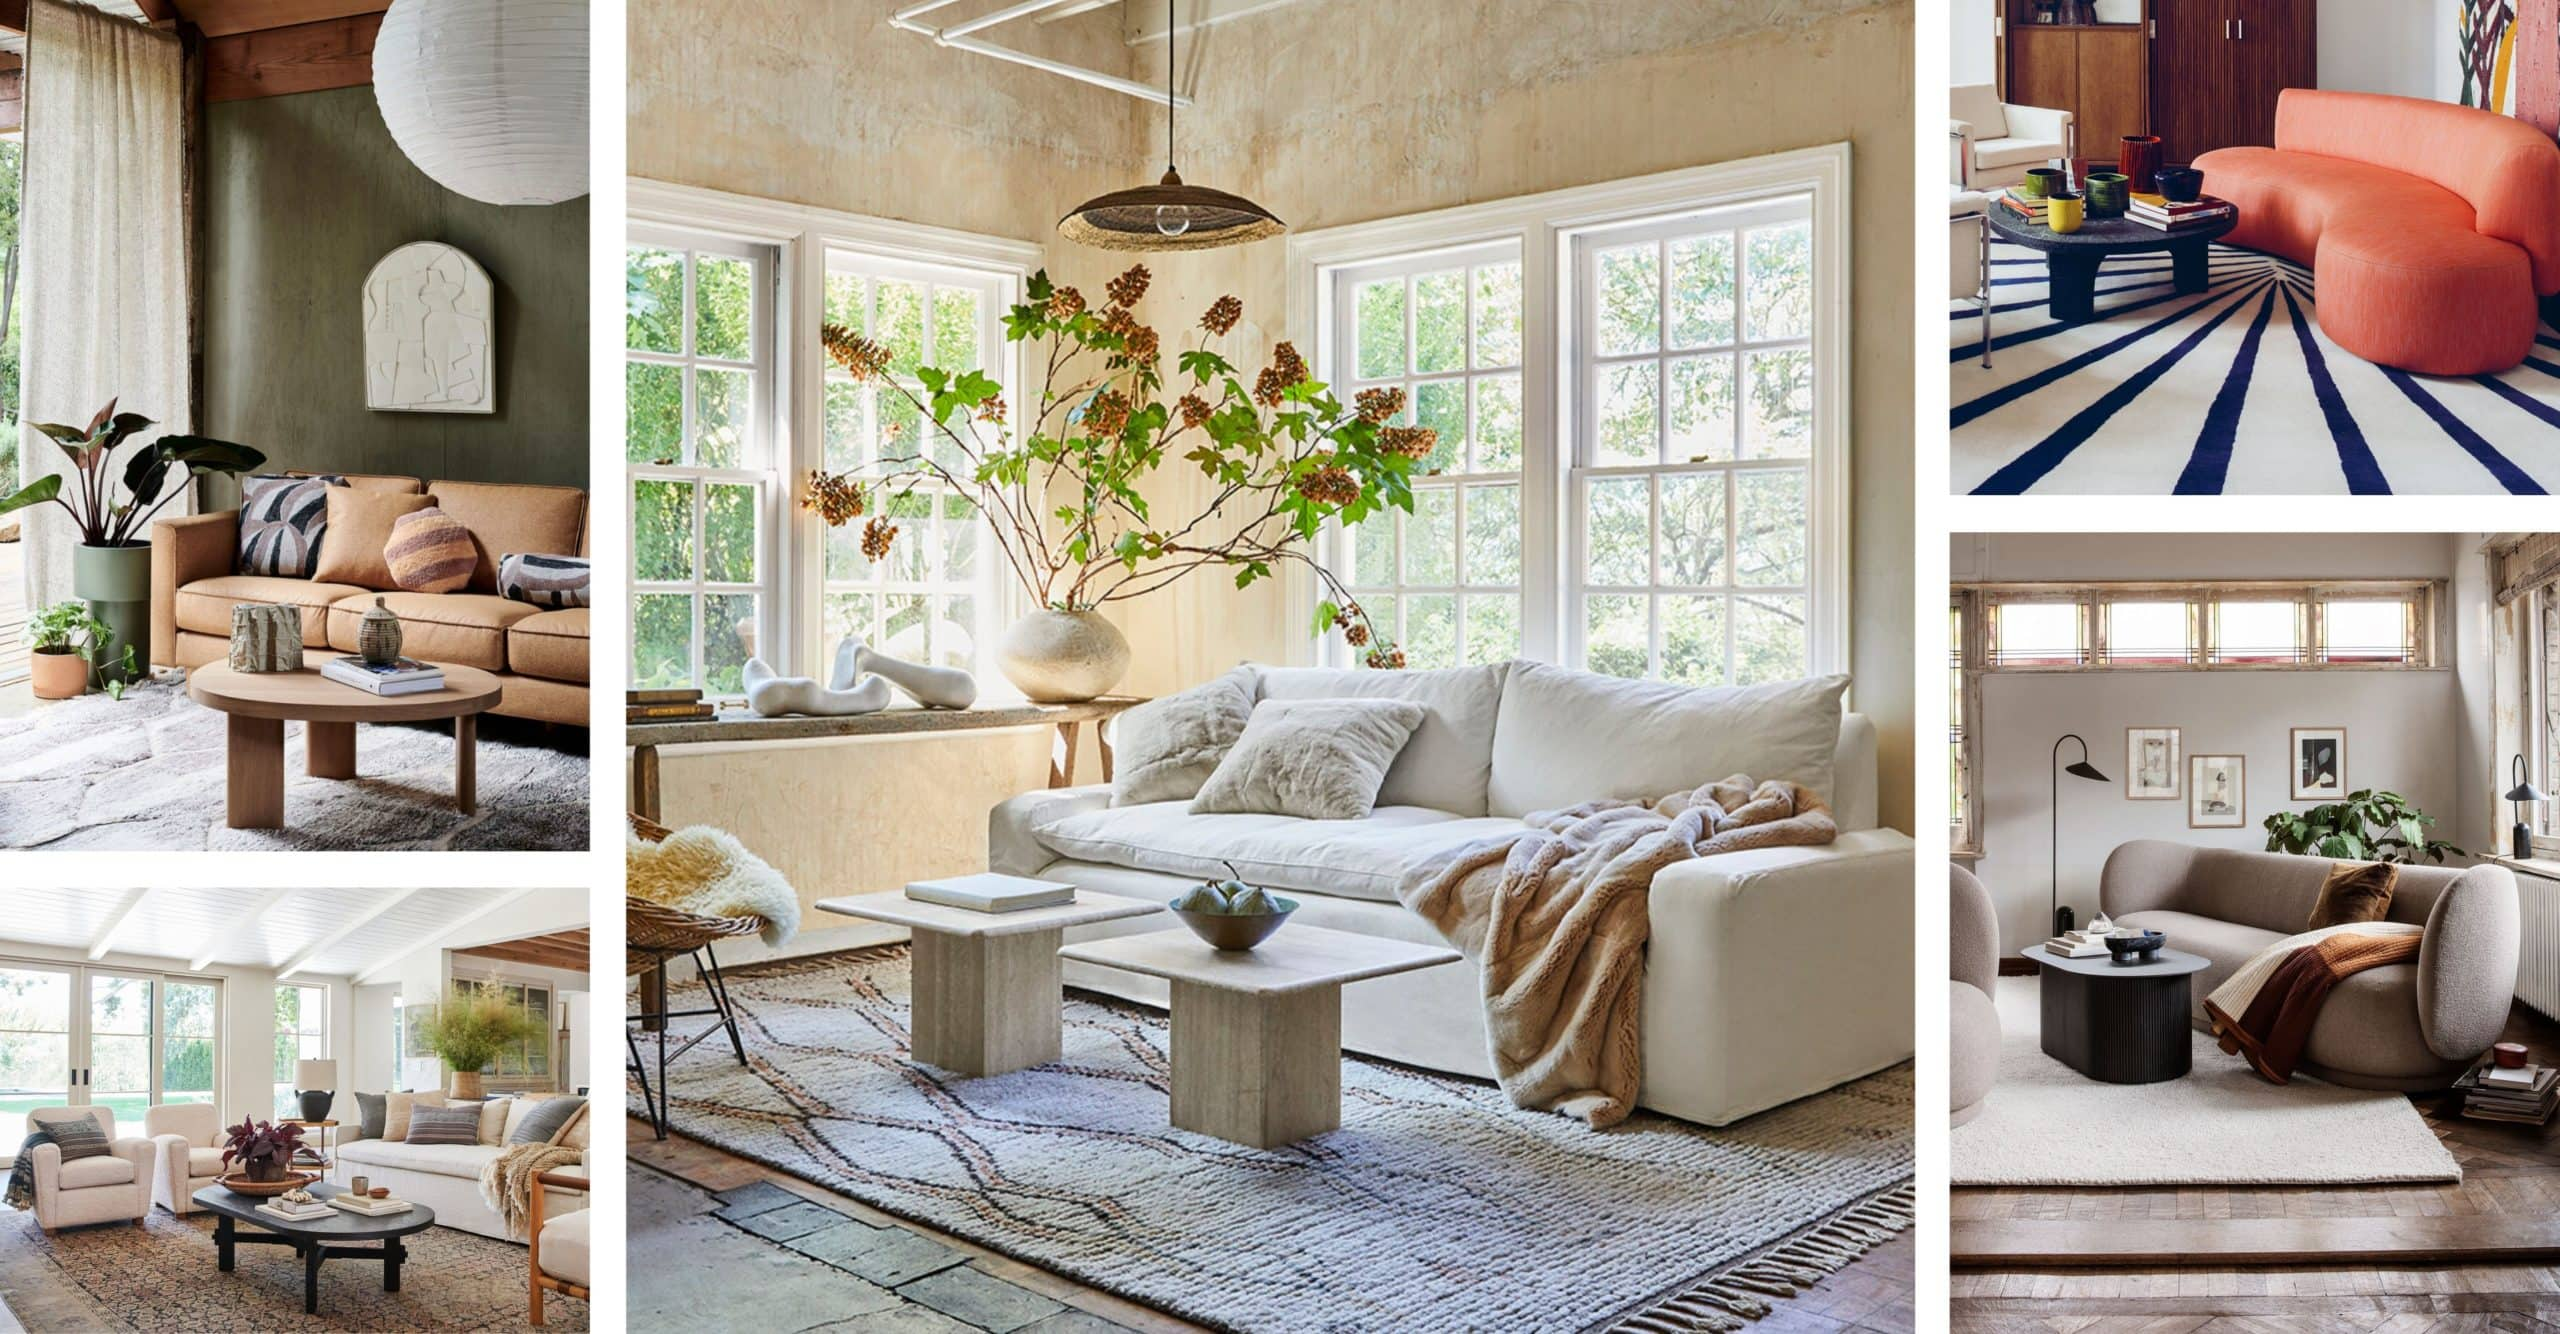 The Living Room Trends We're Predicting For 2021 (And How To Add Them To Your Home) - Bobby Berk